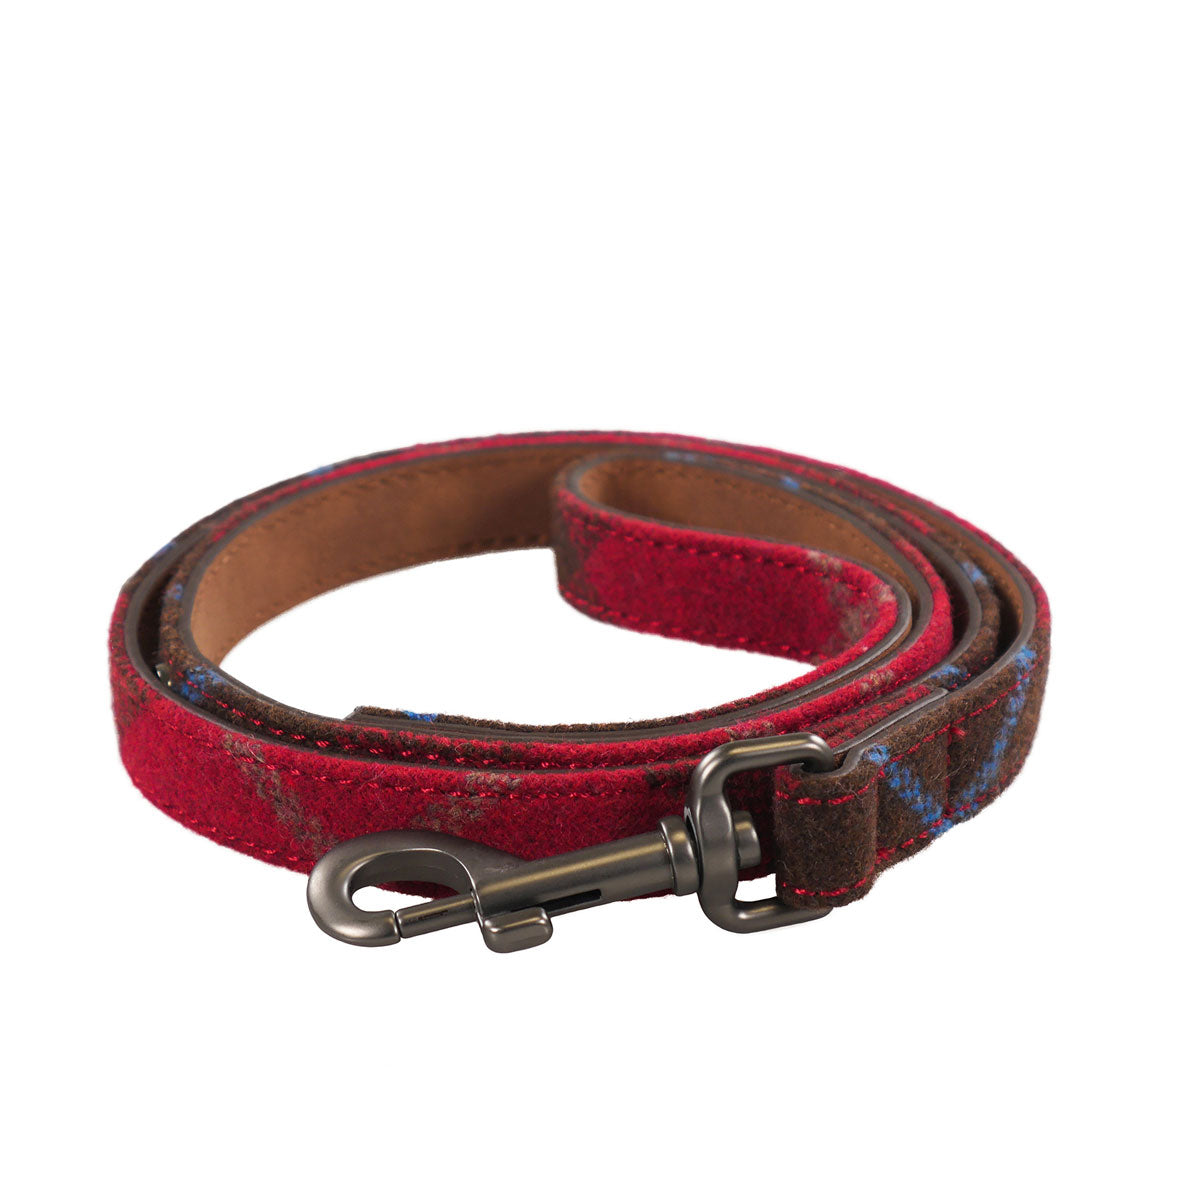 Joules Heritage Tweed Leather Dog Lead